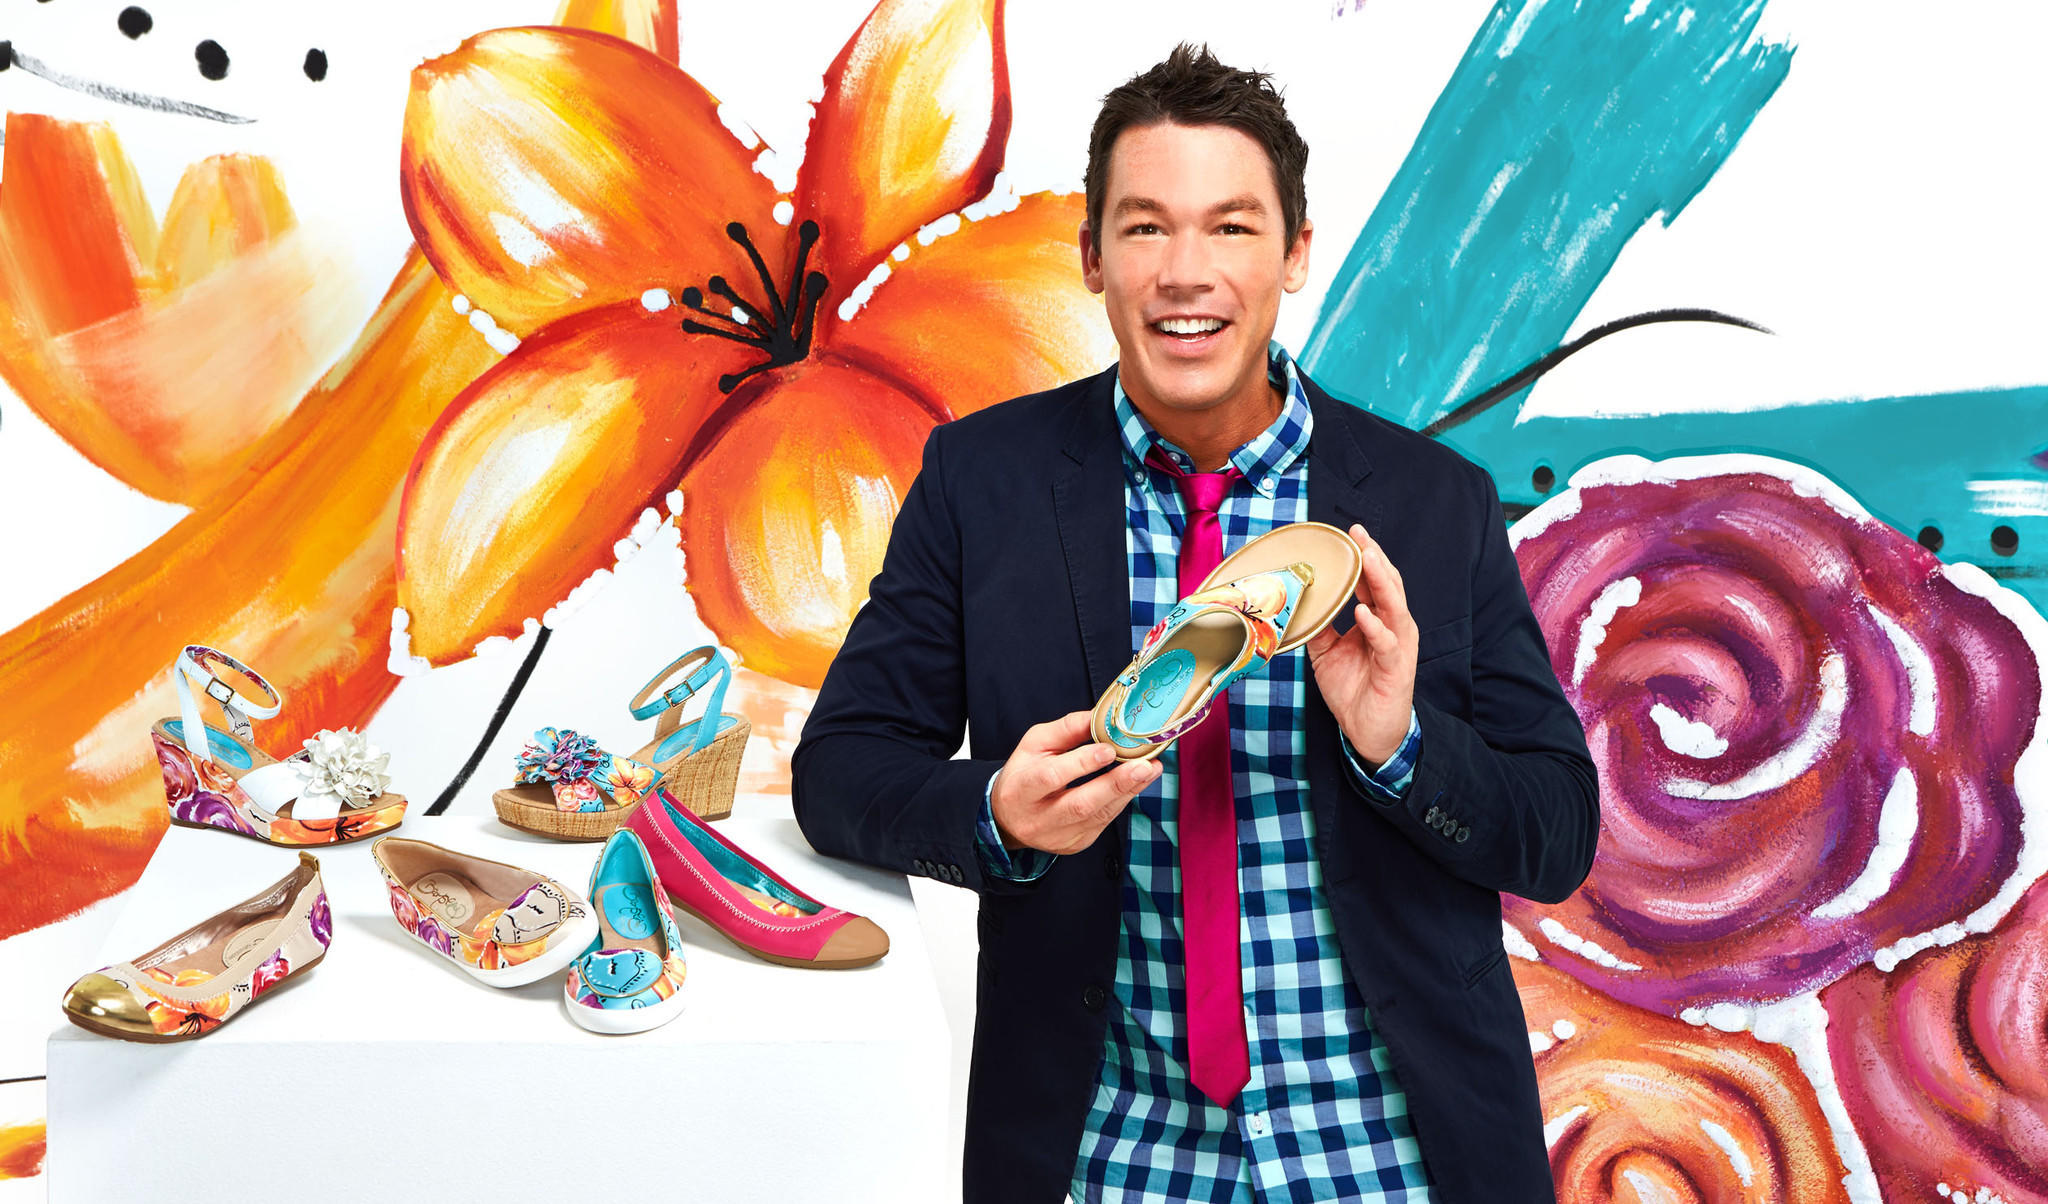 Hgtv interior designer david bromstad partners with for David hgtv designer